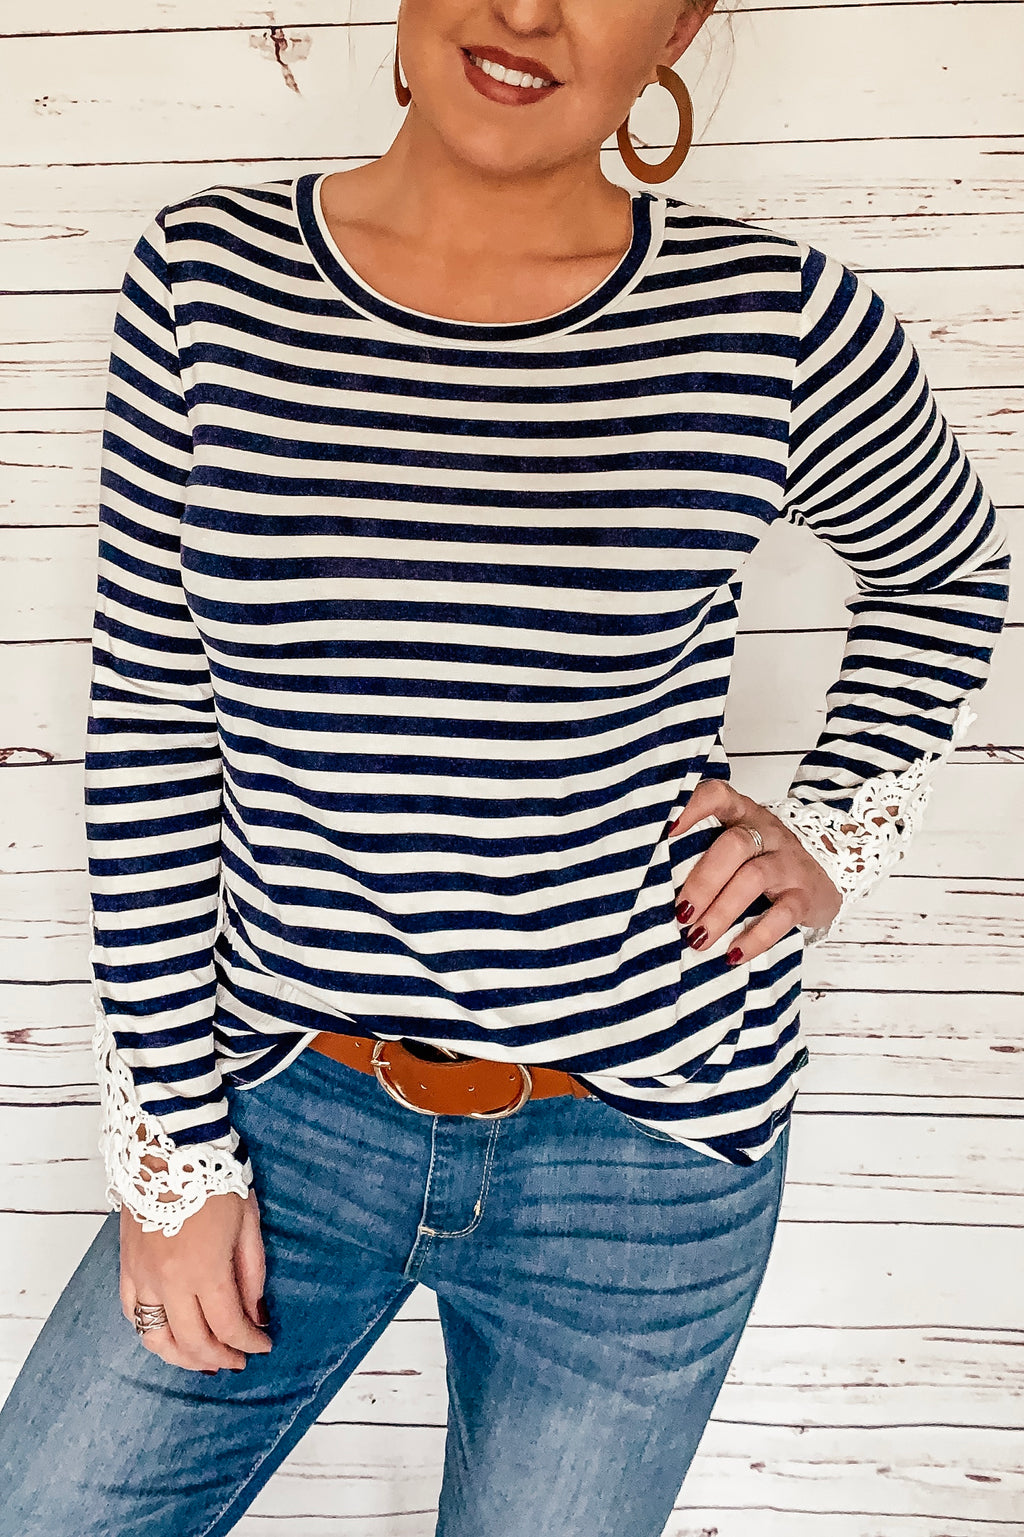 Navy Stripes and Crotchet Lace Top